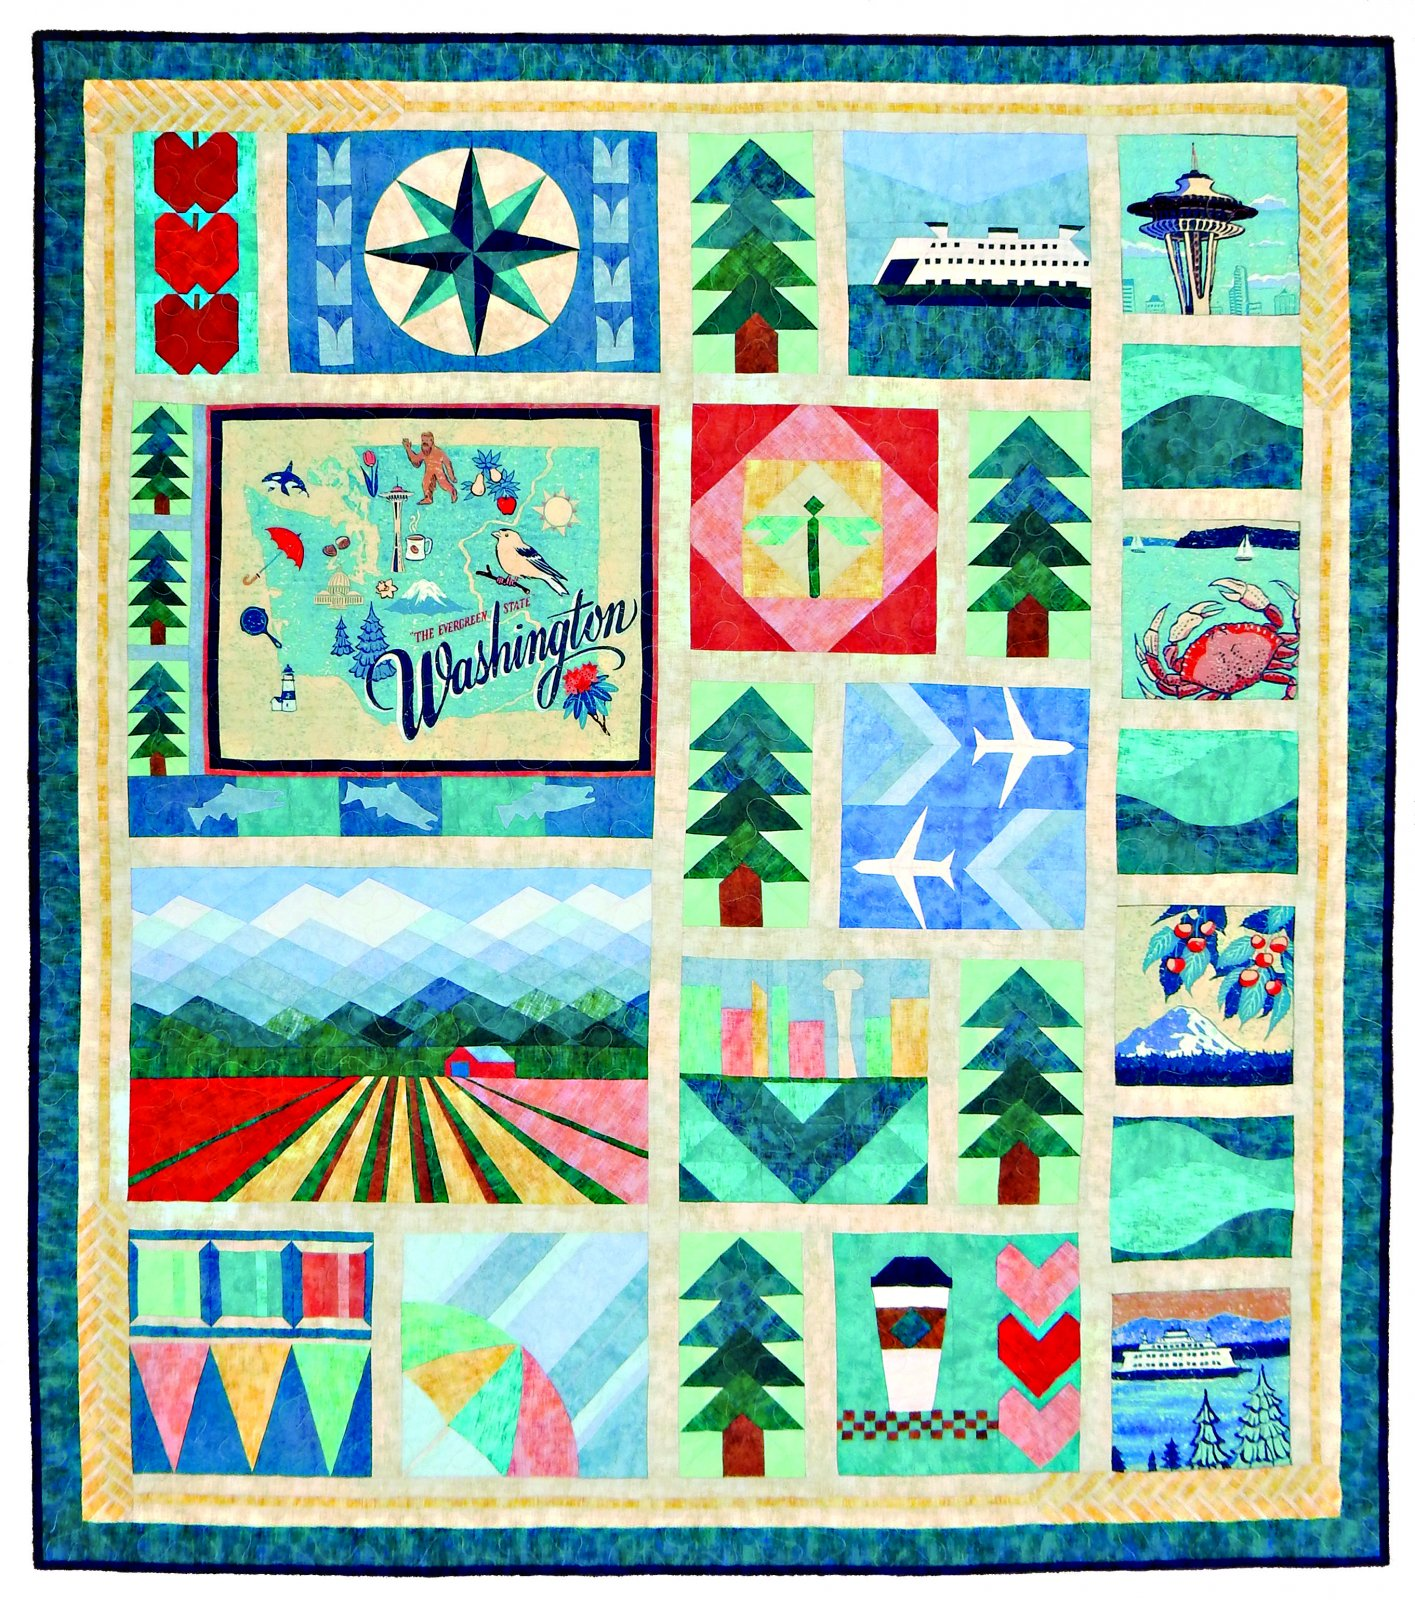 Evergreen State Complete Quilt Kit (Pattern and Panel)